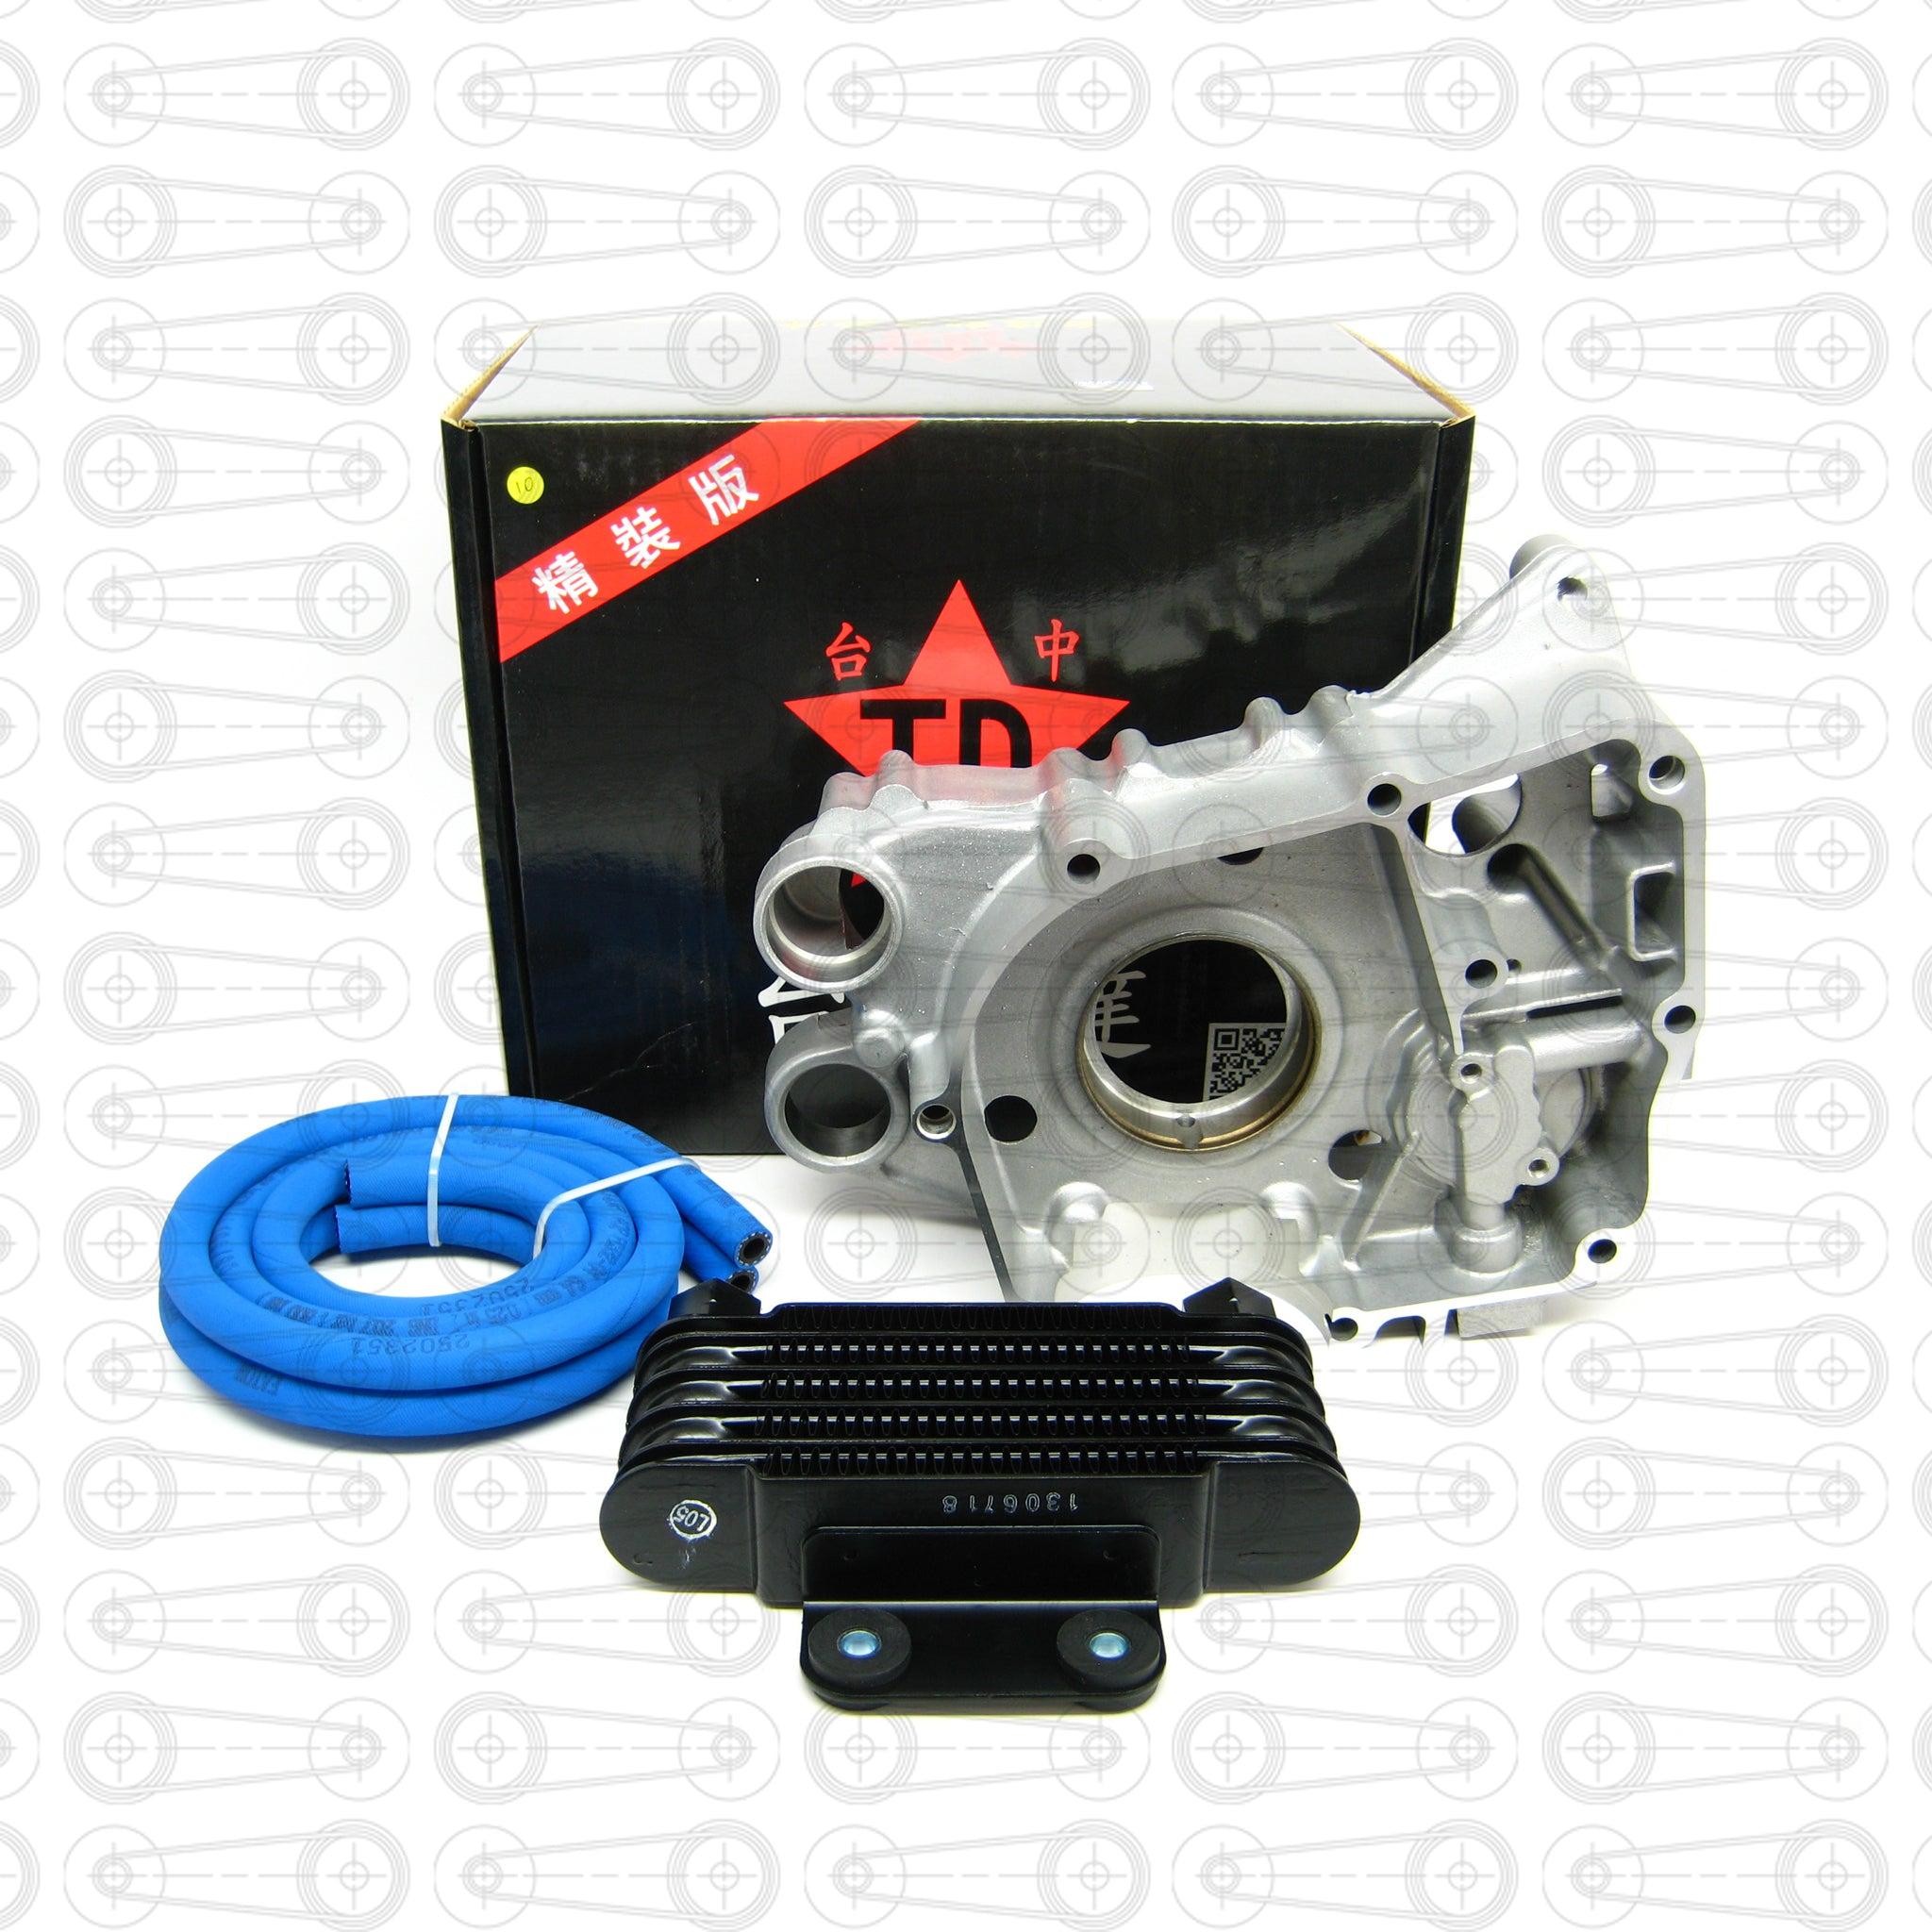 TAIDA - OIL COOLER/CRANK CASE KIT (GY6)